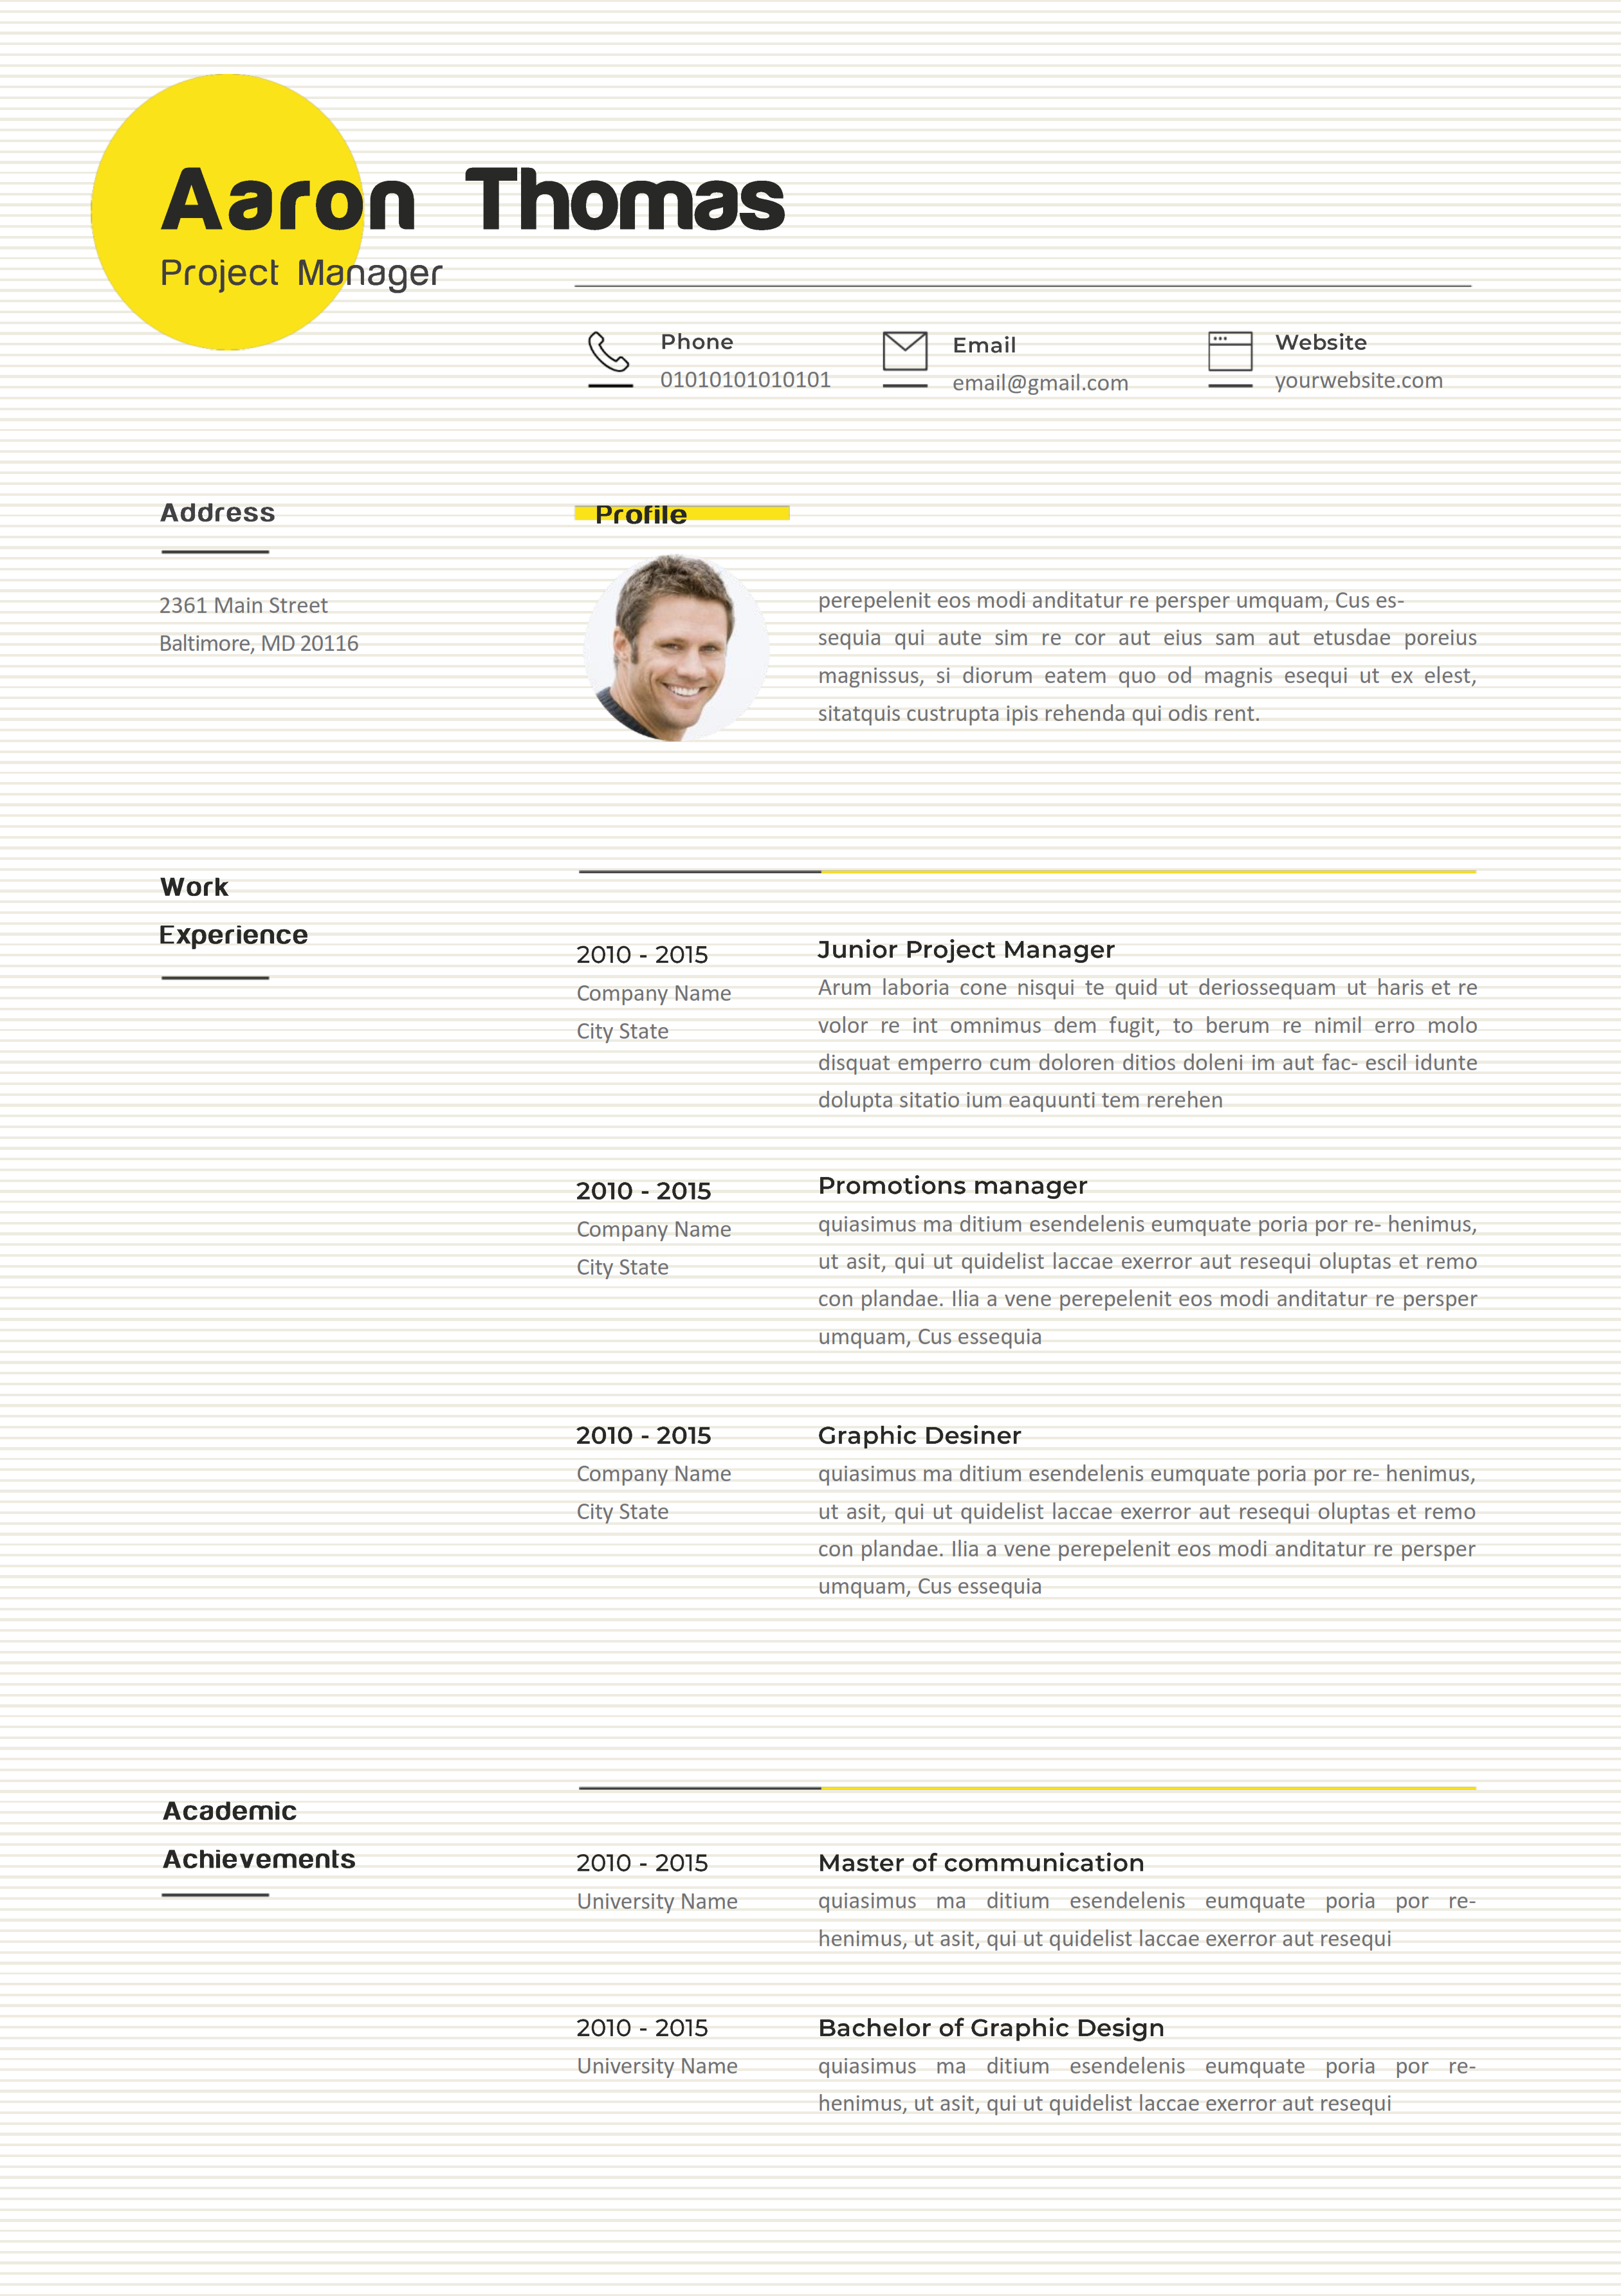 Cabstand Project Manager Resume Resume Writing Tips Resume Layout